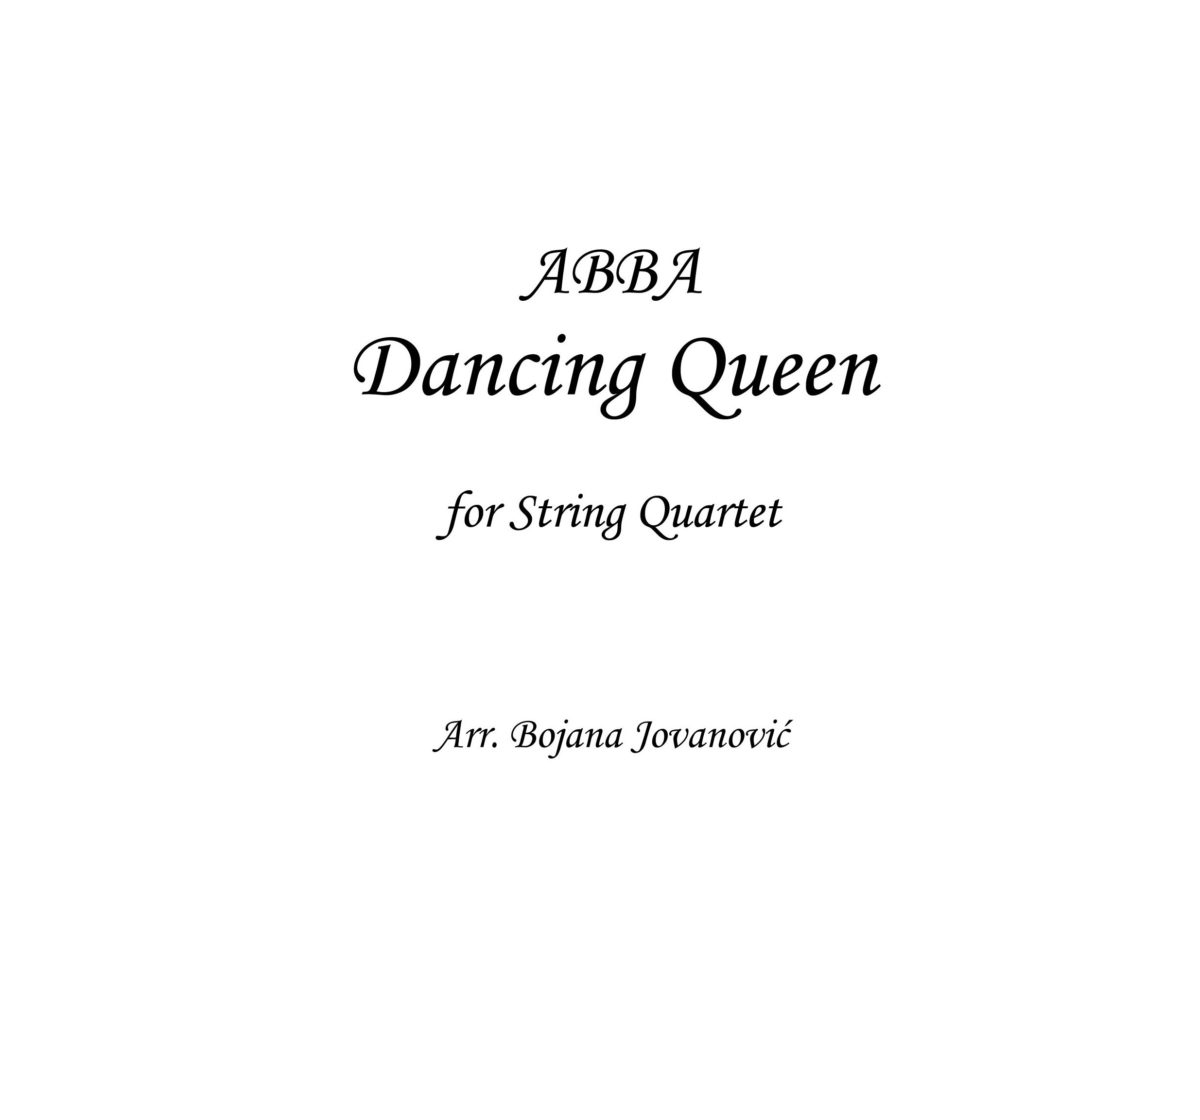 Dancing Quenn (ABBA) - Sheet Music